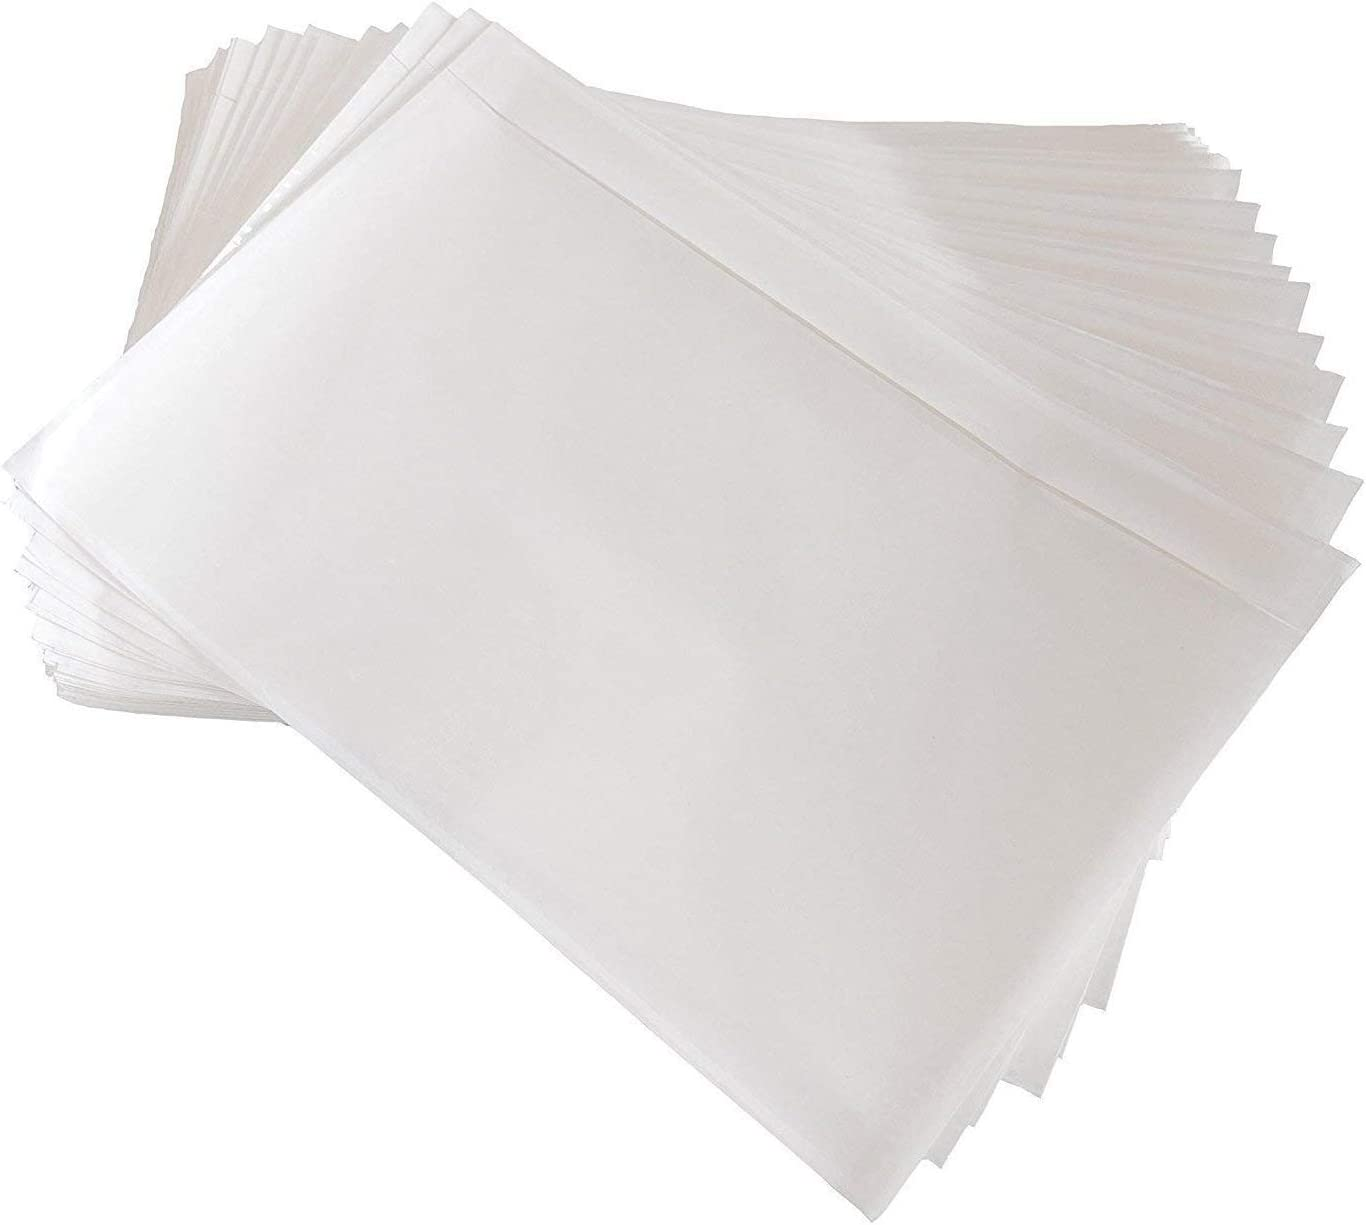 """100 Pack 7.5"""" x 5.5"""" Clear Self-Adhesive Top Loading Packing List/Shipping Label Envelopes Pouches"""